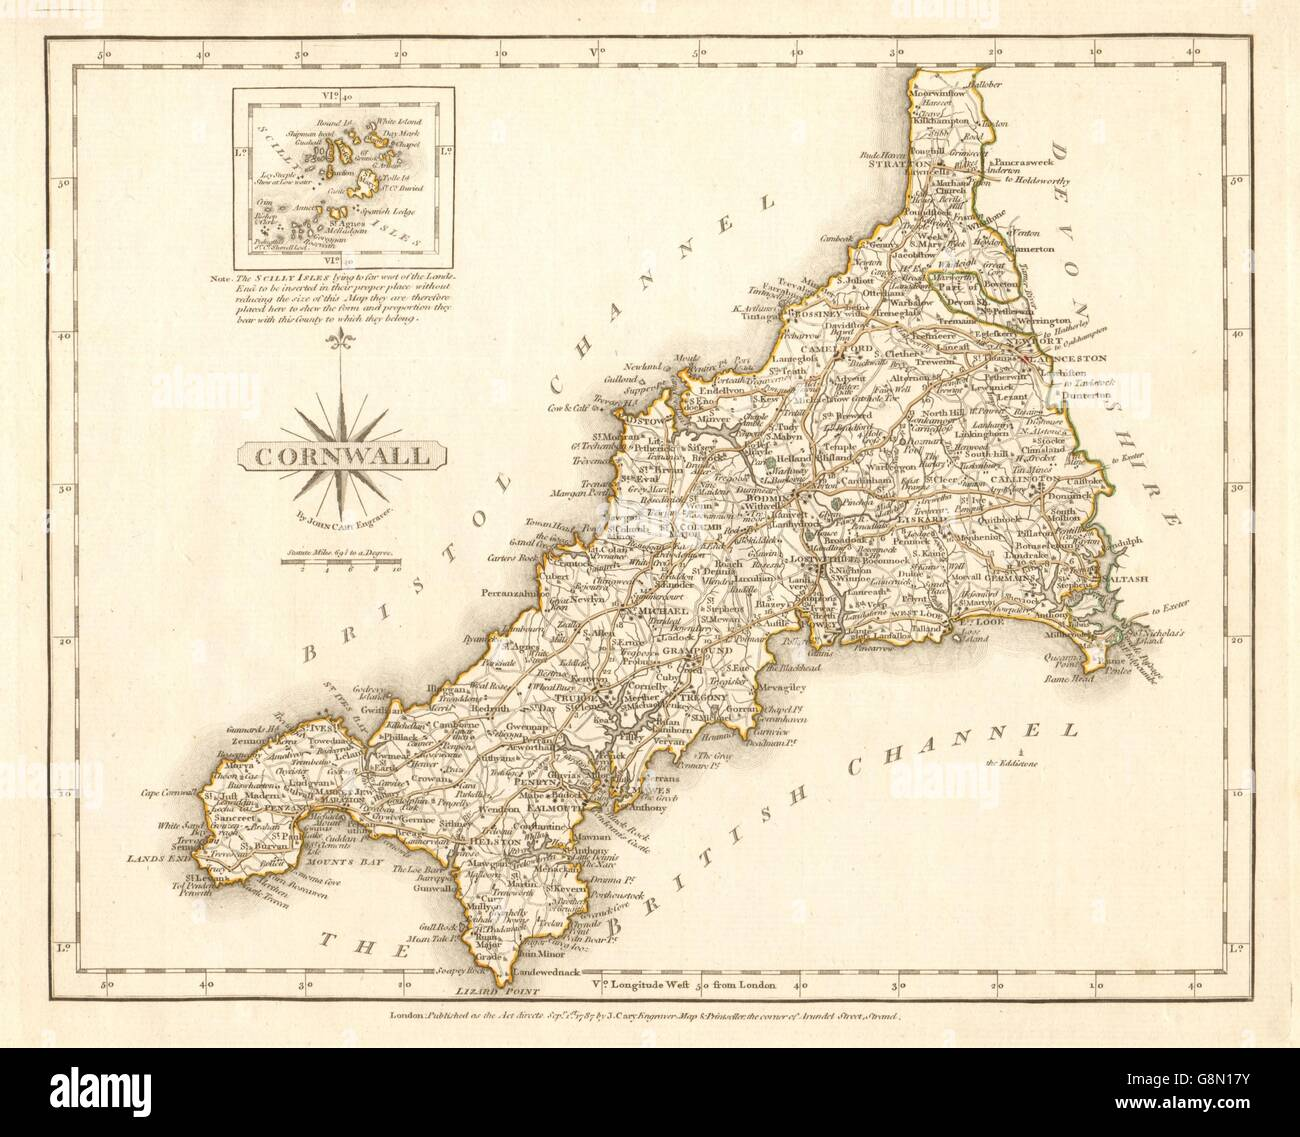 Antique county map of CORNWALL by JOHN CARY. Original outline ...